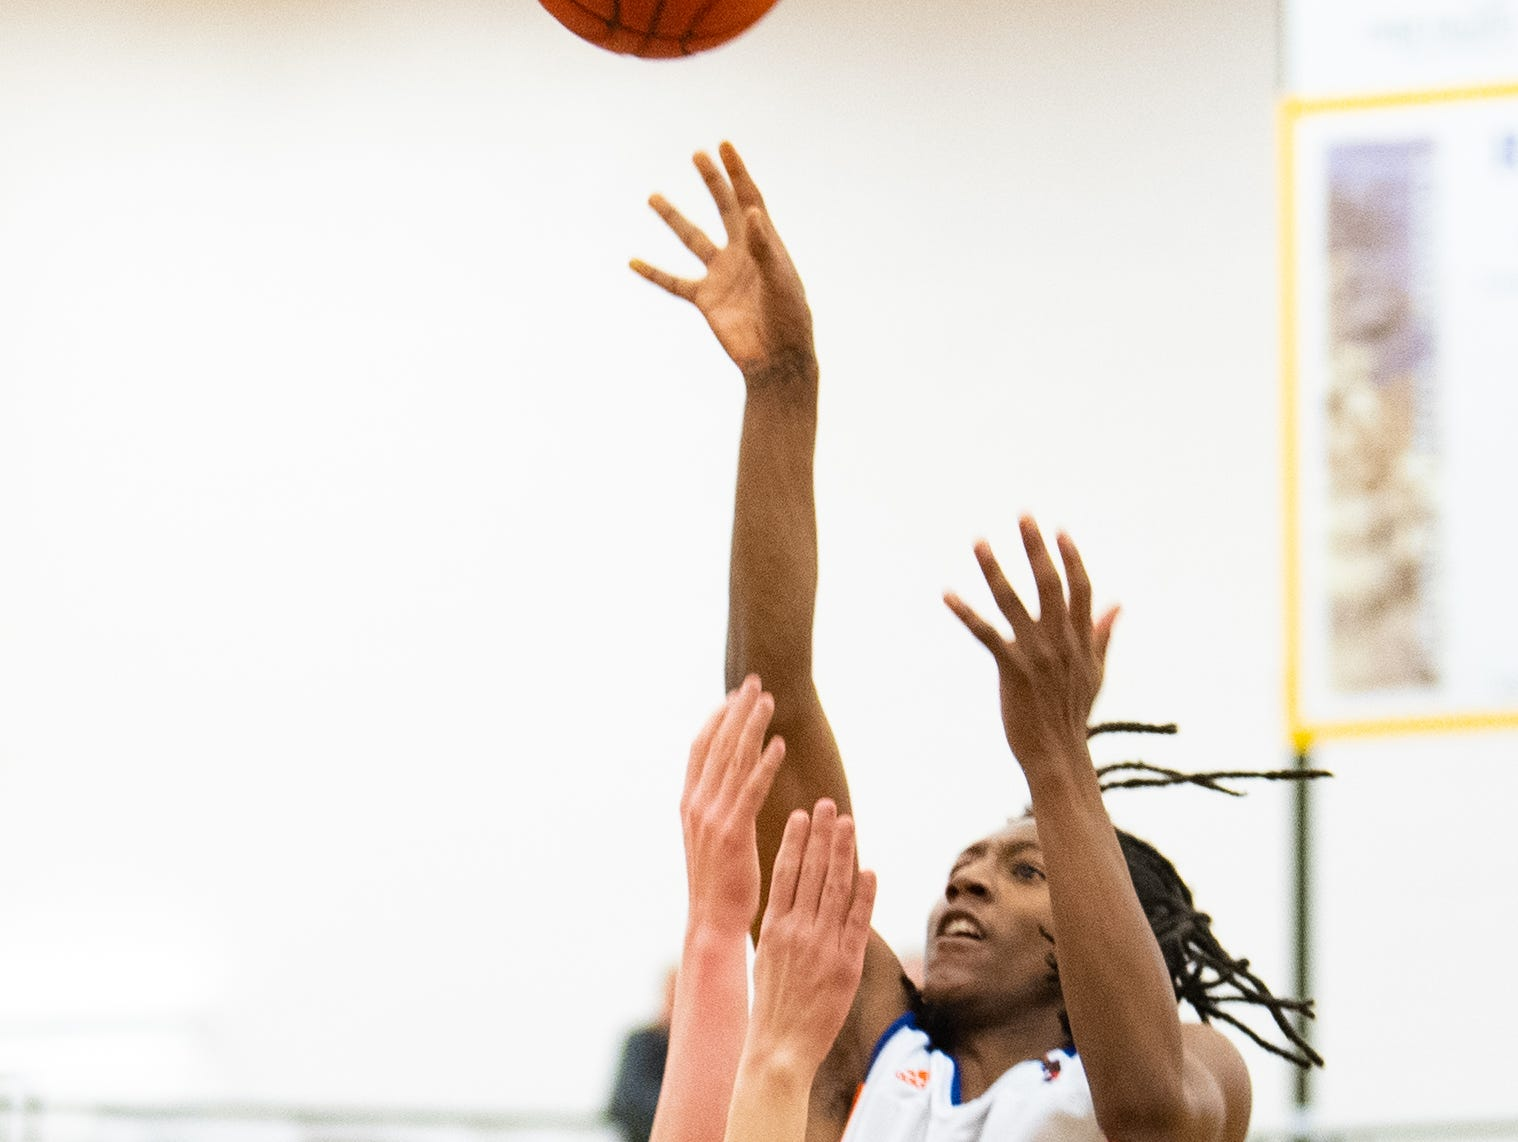 Edward Minter (5) rises up during the YAIAA boys' basketball semifinals between York High and Littlestown, Wednesday, February 13, 2019 at Red Lion Area High School. The Bearcats defeated the Thunderbolts 74 to 51.